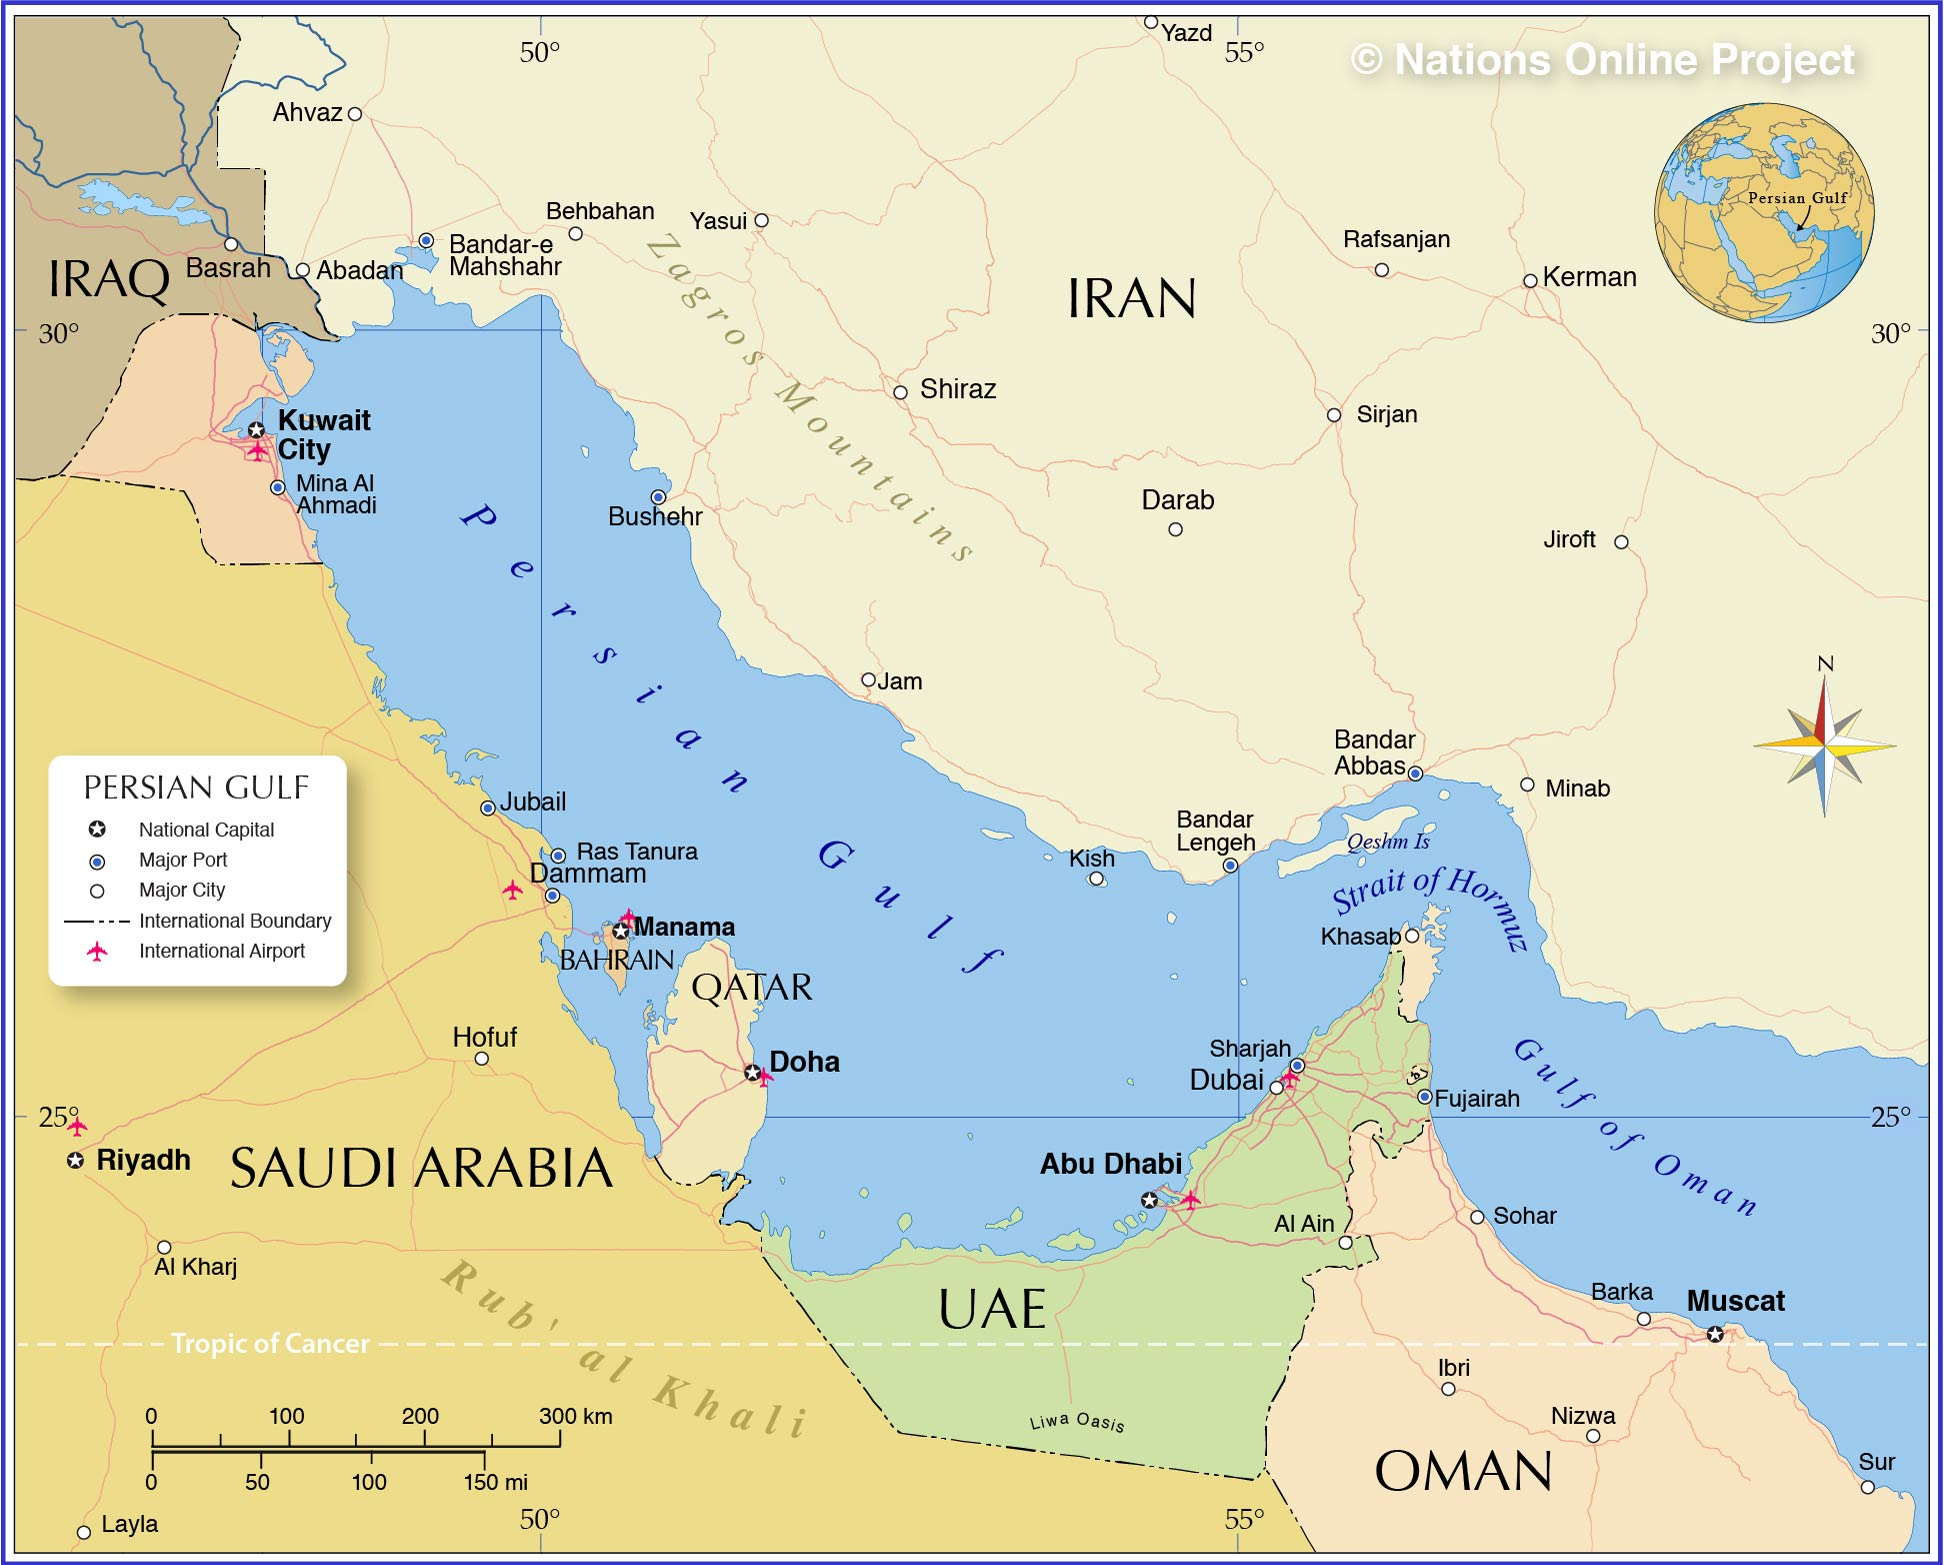 Picture of: Political Map Of Persian Gulf Nations Online Project